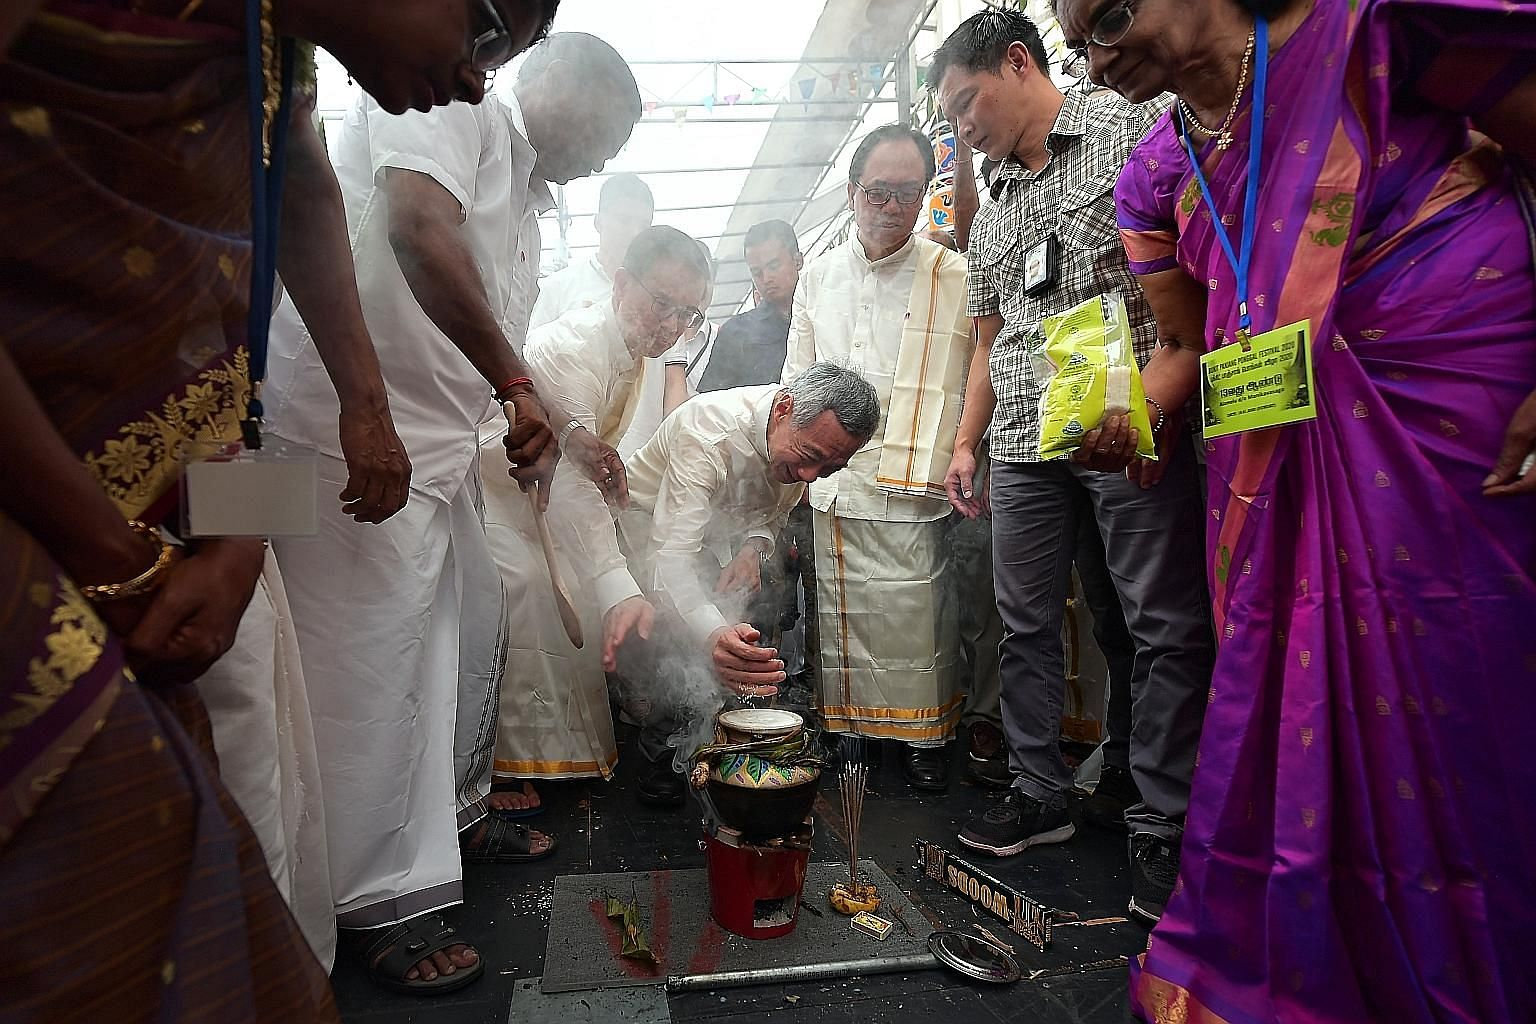 Prime Minister Lee Hsien Loong adding rice grains to a pot of boiling milk yesterday. During Pongal, cooking rice in fresh milk until the mix overflows from the pot symbolises abundance and fortune. The festivities were hosted by Bukit Panjang MP Teo